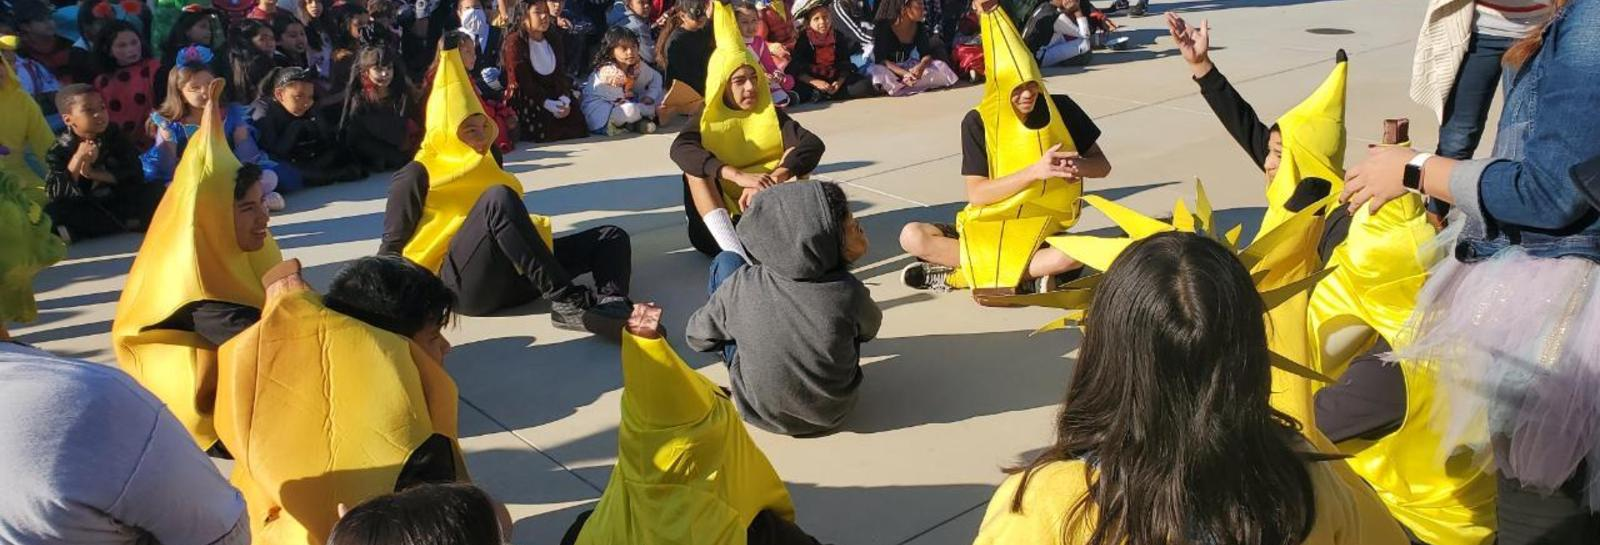 K-8 Halloween Parade at San Jose - Our Halloween Parade was BANANAS, no but really, we had several of them in our parade! Thank you to all the students and staff who participated.  #proud2bepusd http://edl.io/n1118888